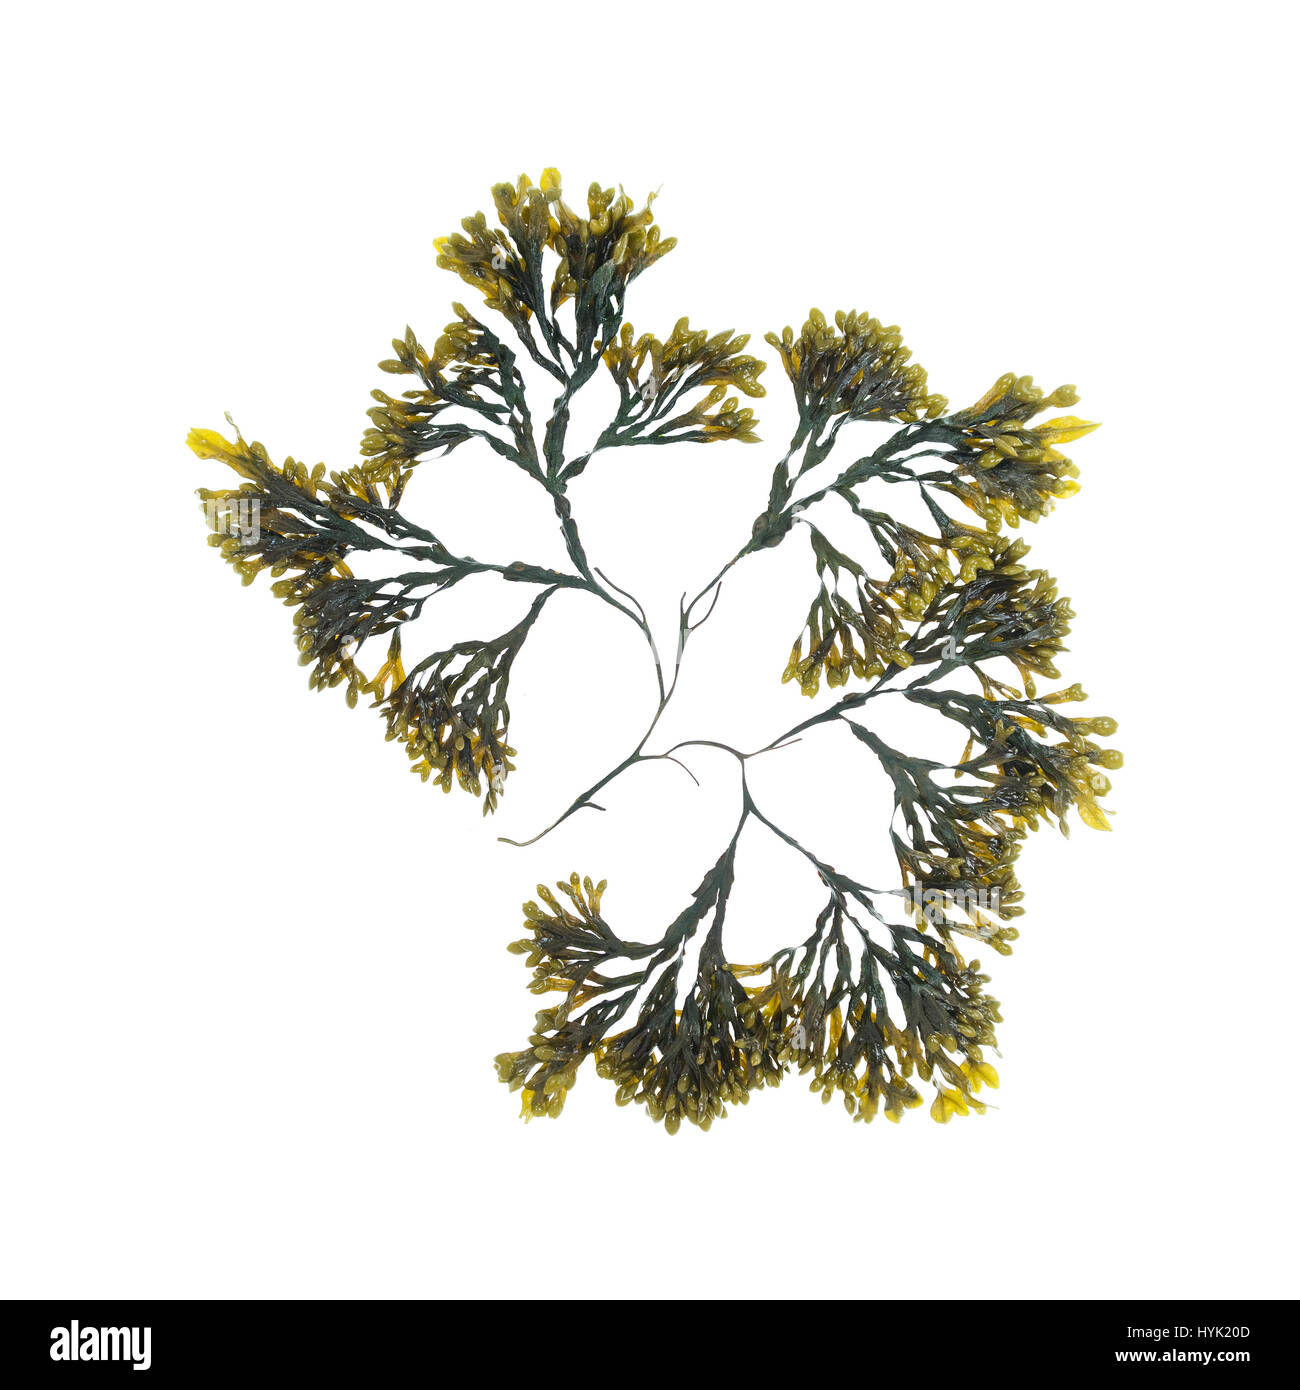 Fucus spiralis (Spiral Wrack) photographed on a light box/white background. - Stock Image